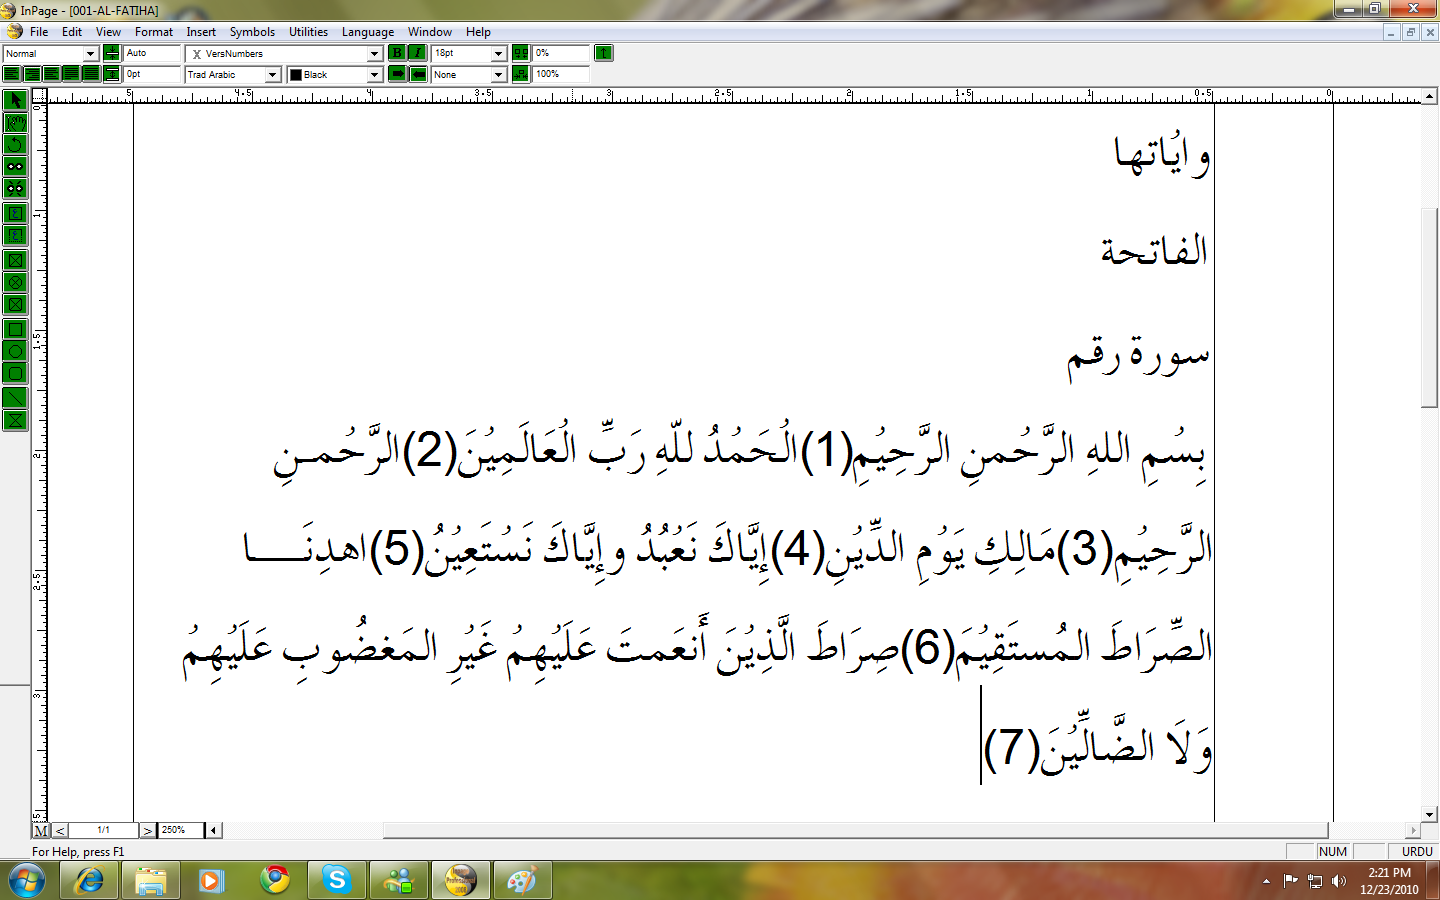 Complete Quran In Inpage Format Arabic